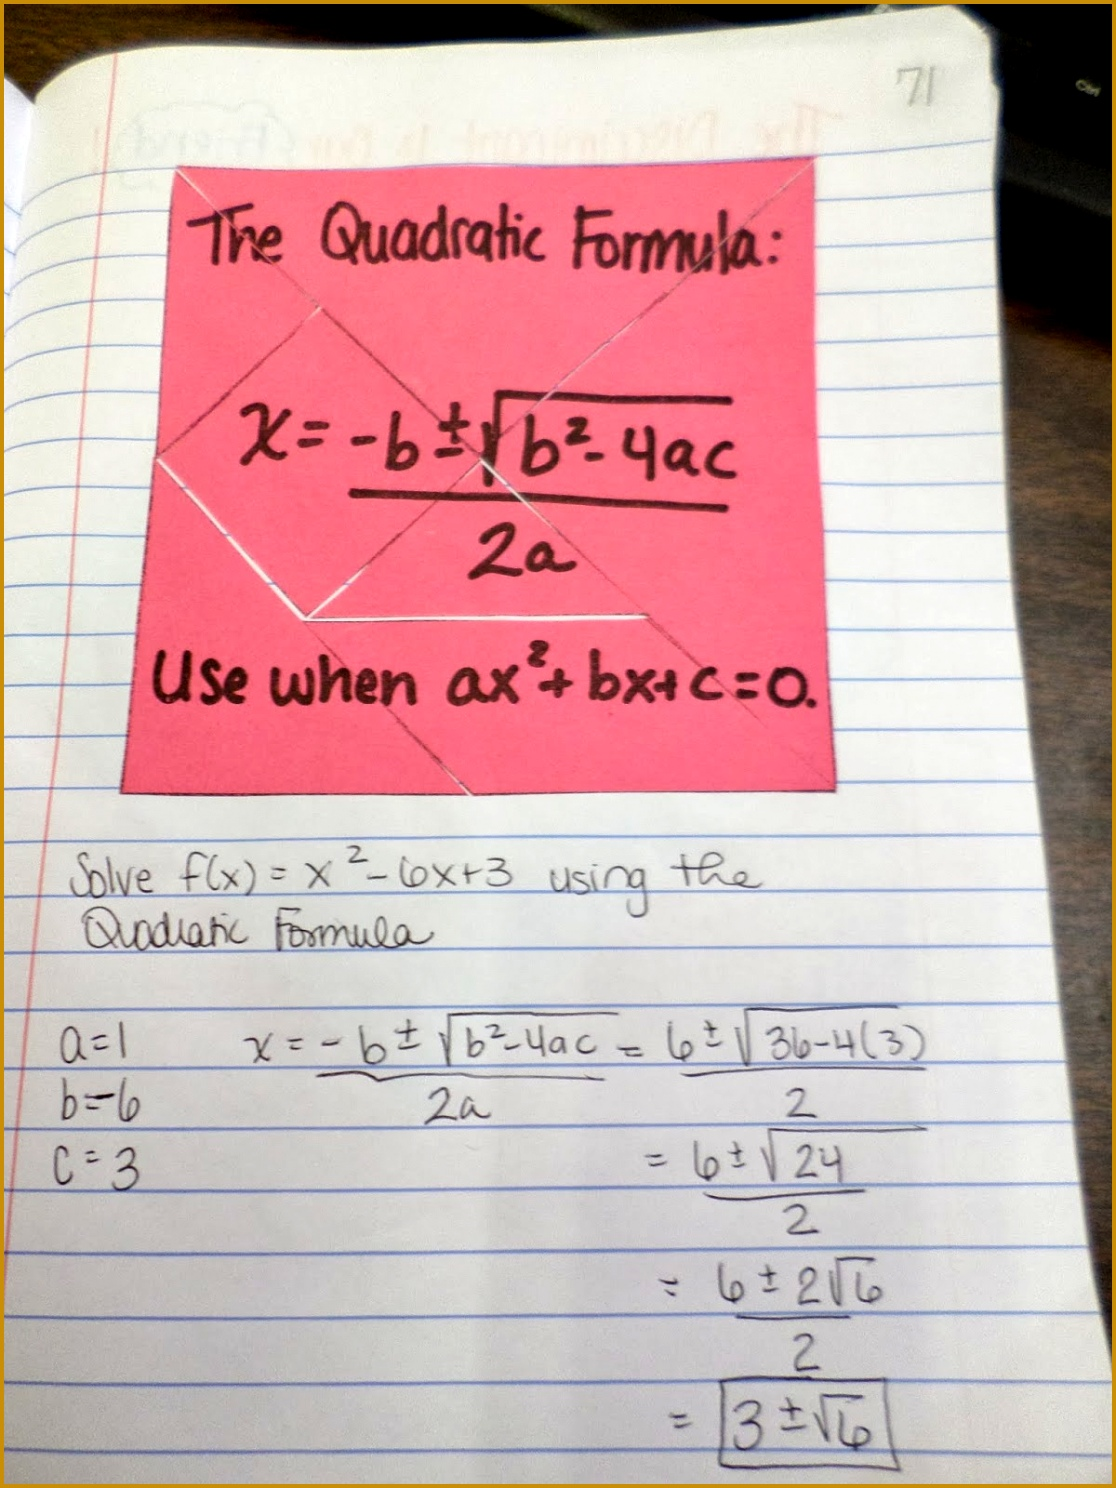 3 Solving Quadratic Equations Using The Quadratic Formula Worksheet